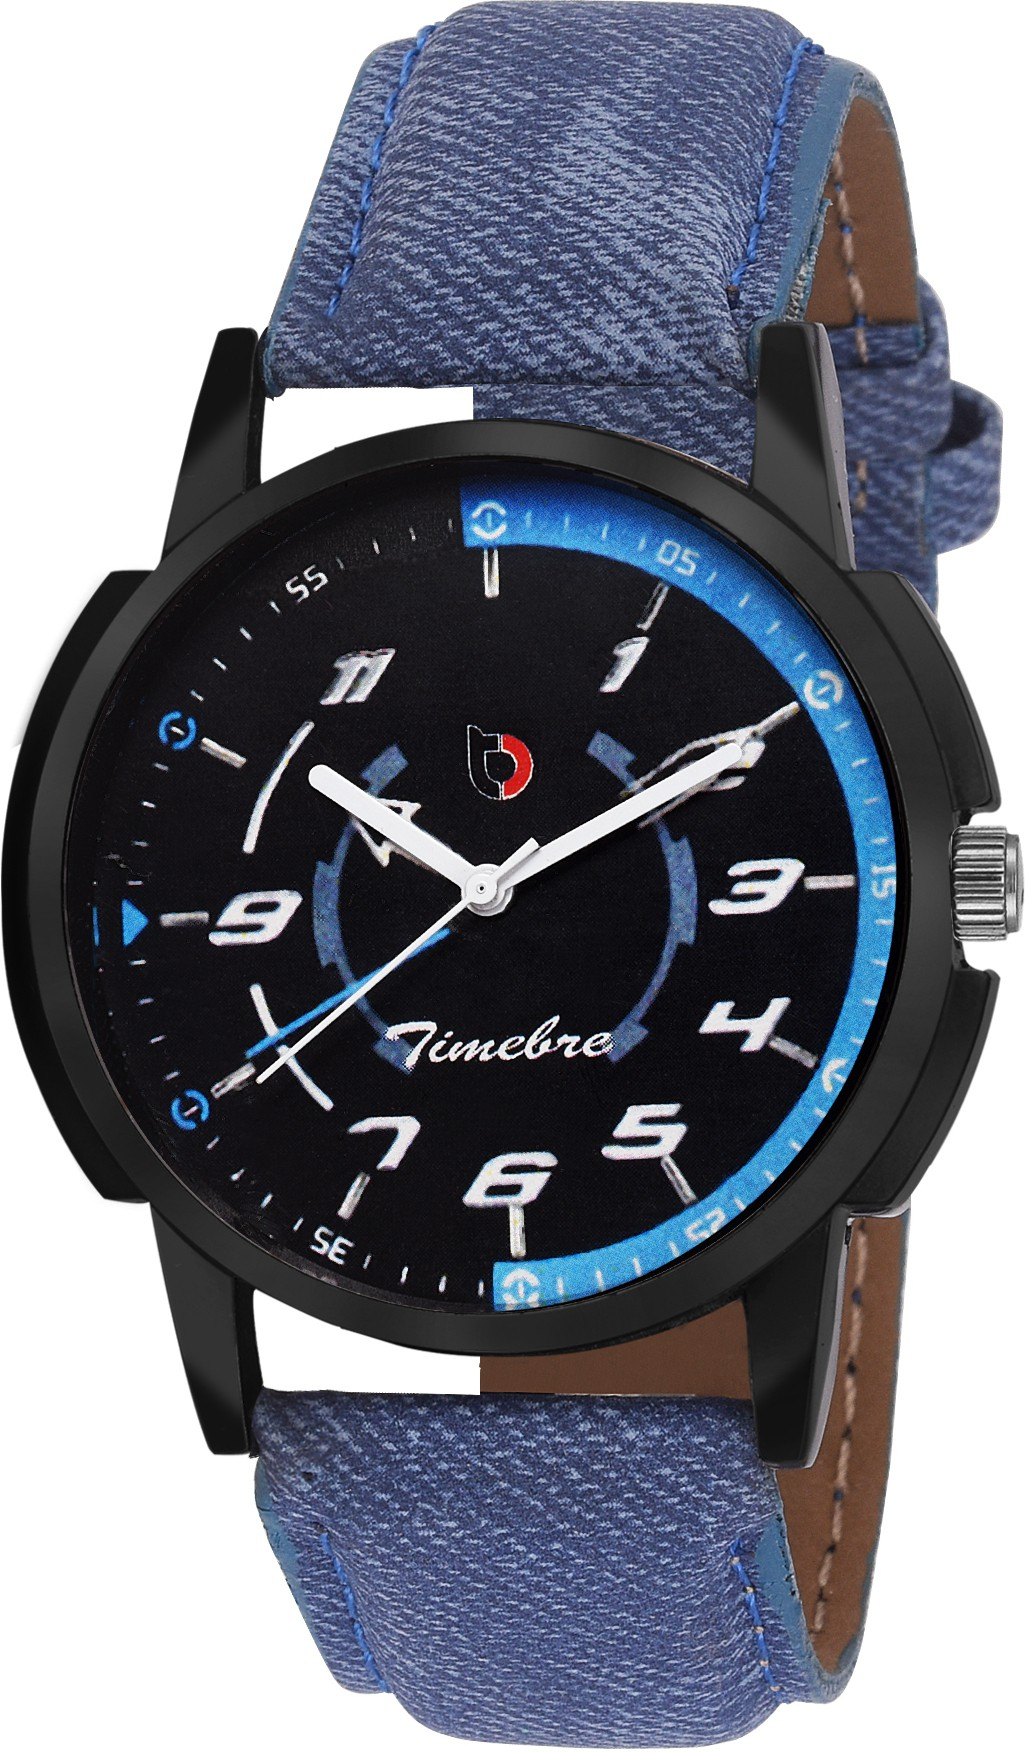 Deals - Delhi - Timebre & more <br> Watches<br> Category - watches<br> Business - Flipkart.com